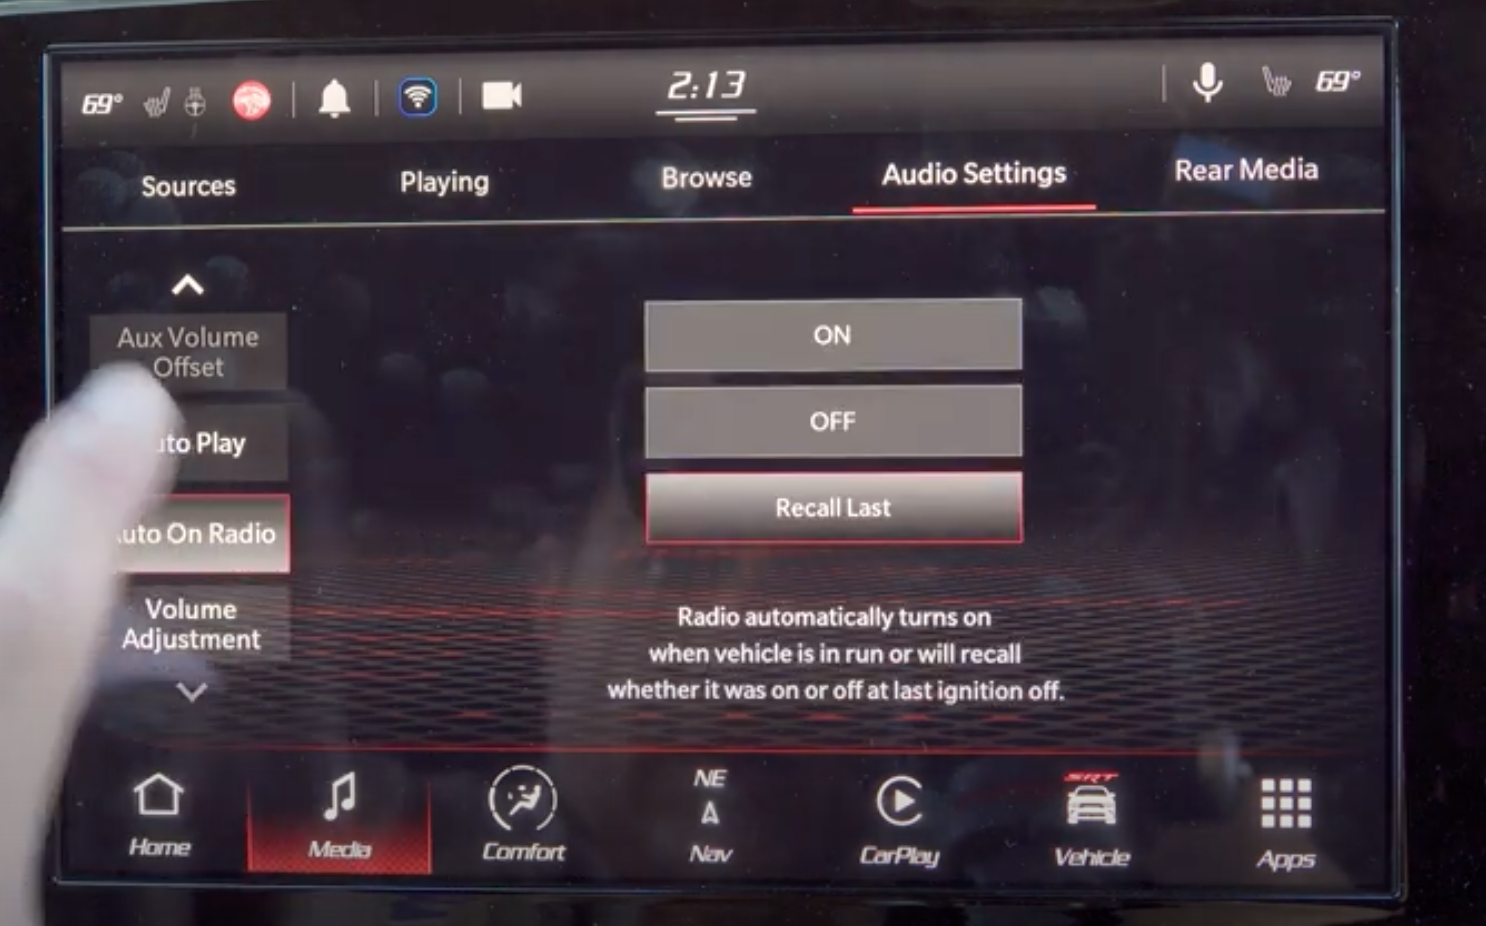 Driving preset settings for the radio so that it can automatically turn on when vehicle is on